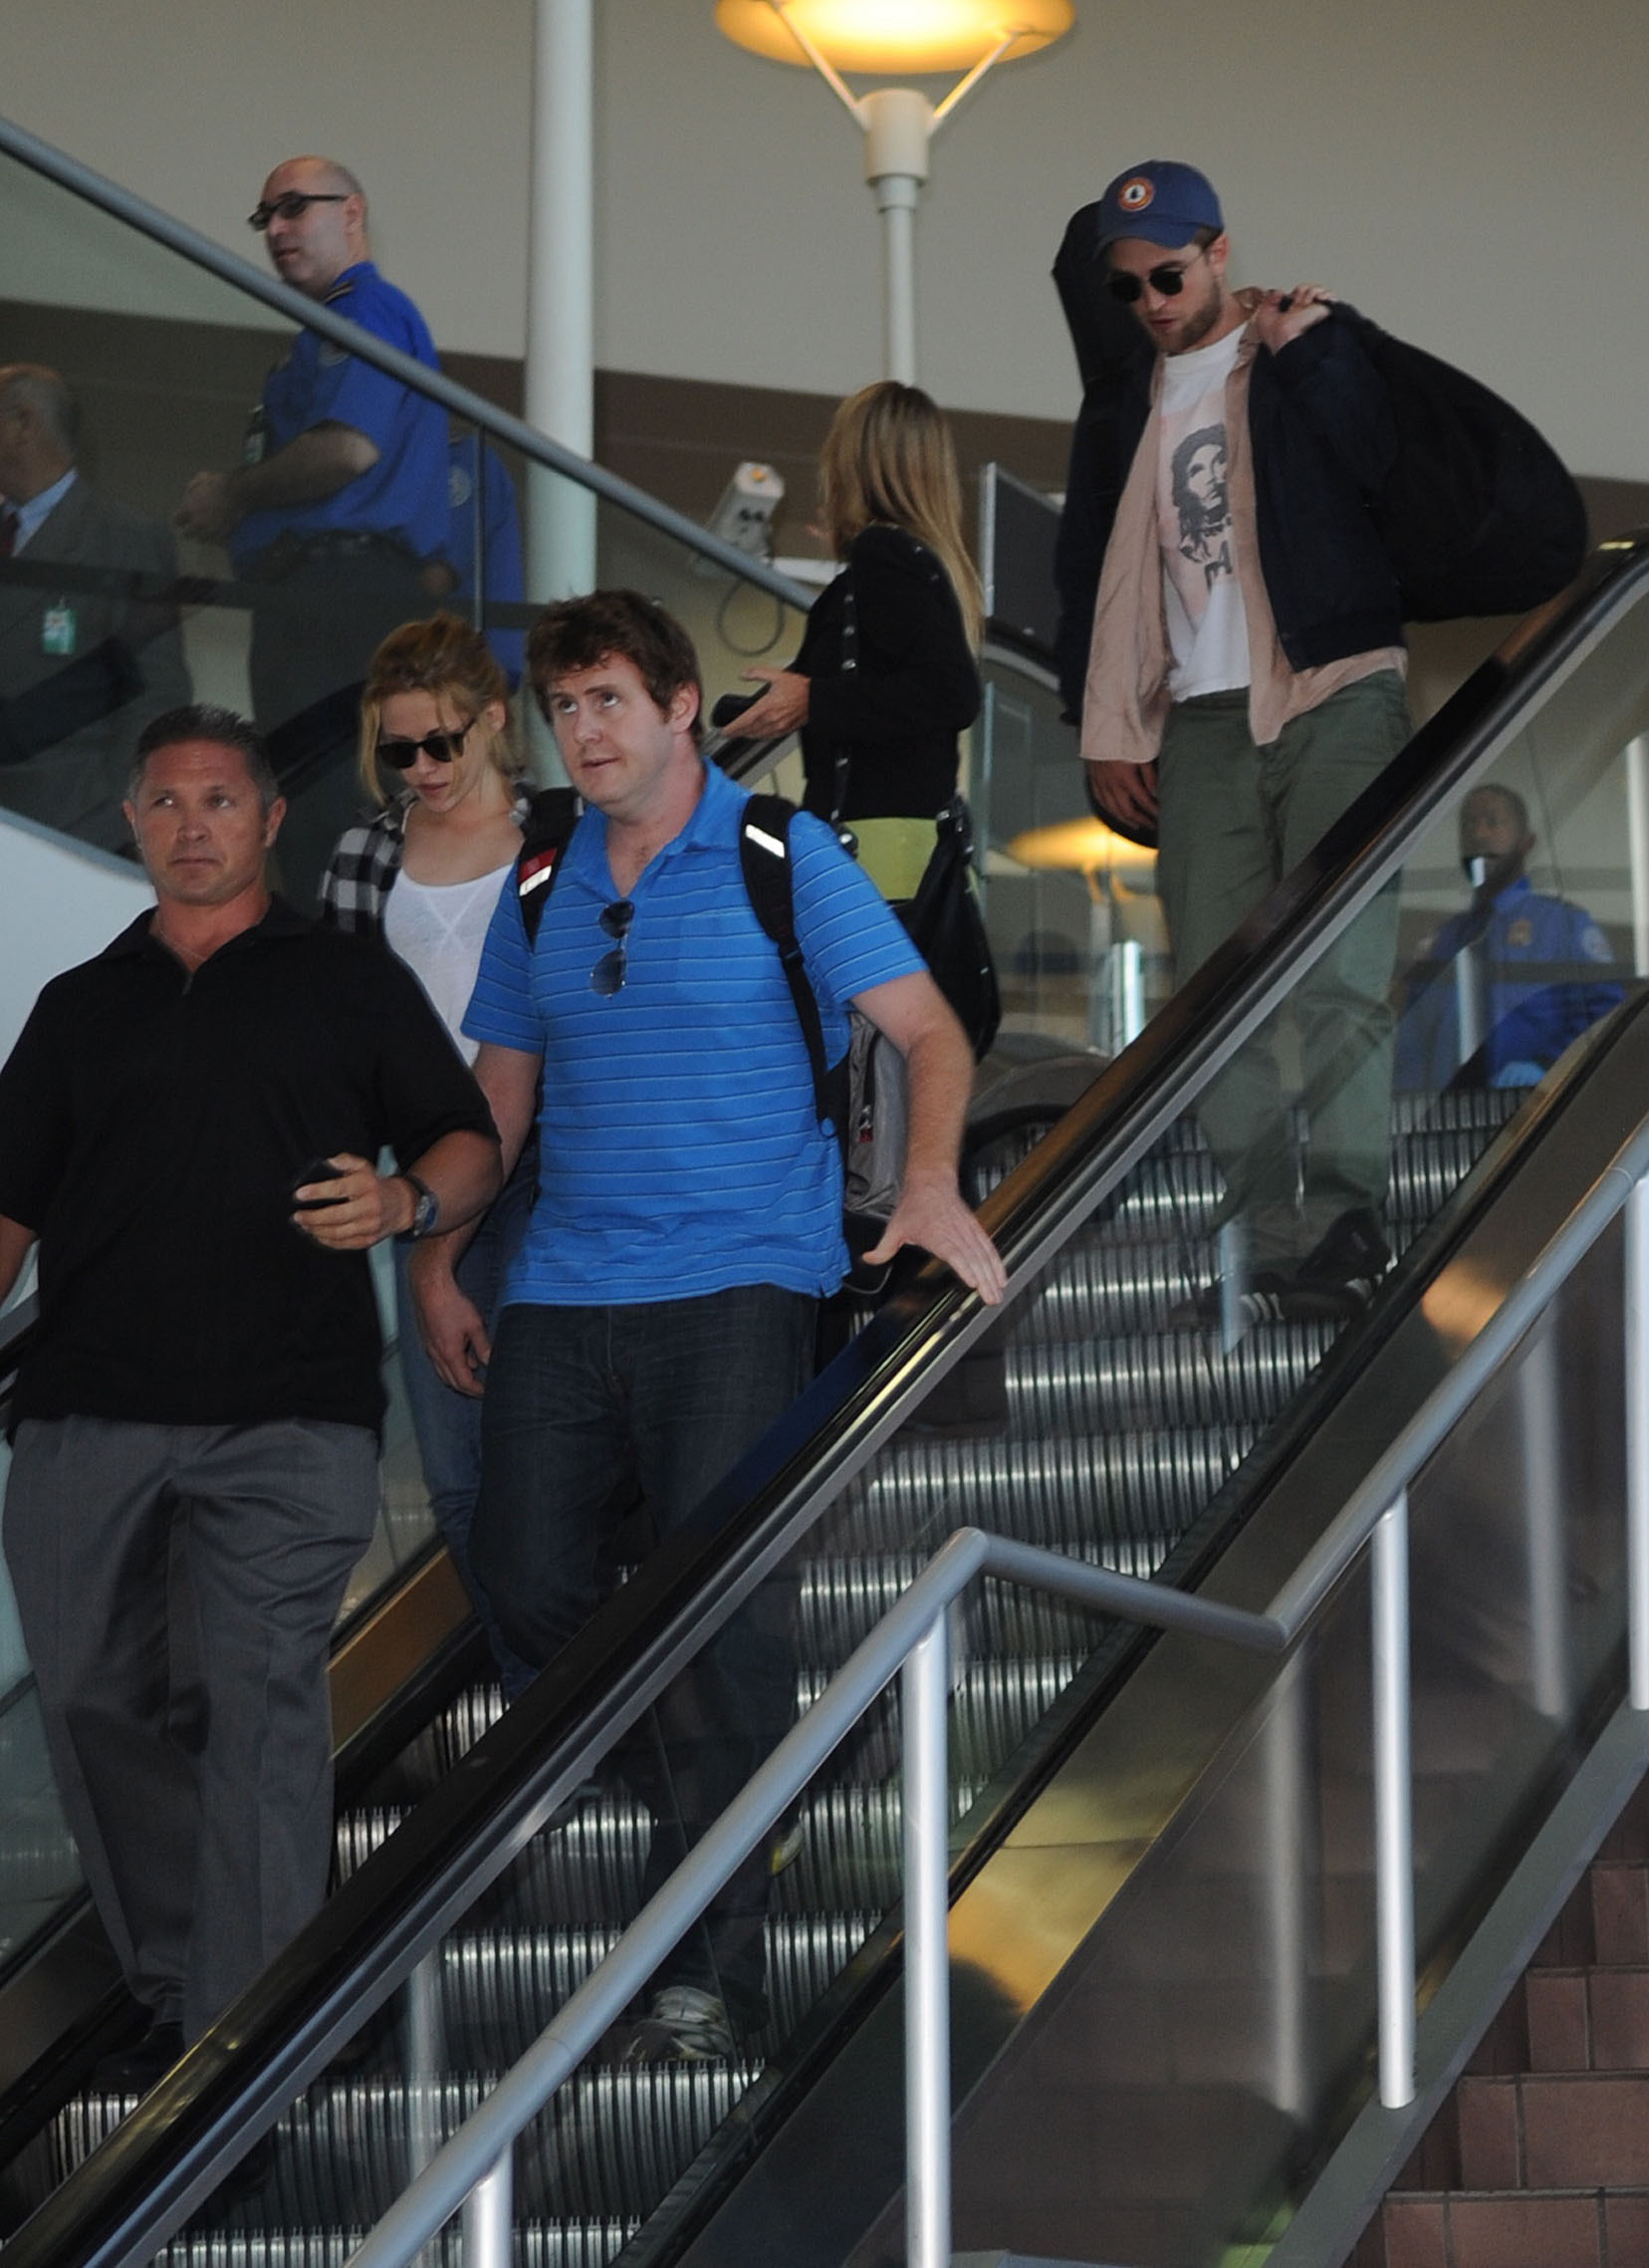 Rob and Kristen arriving in LAX